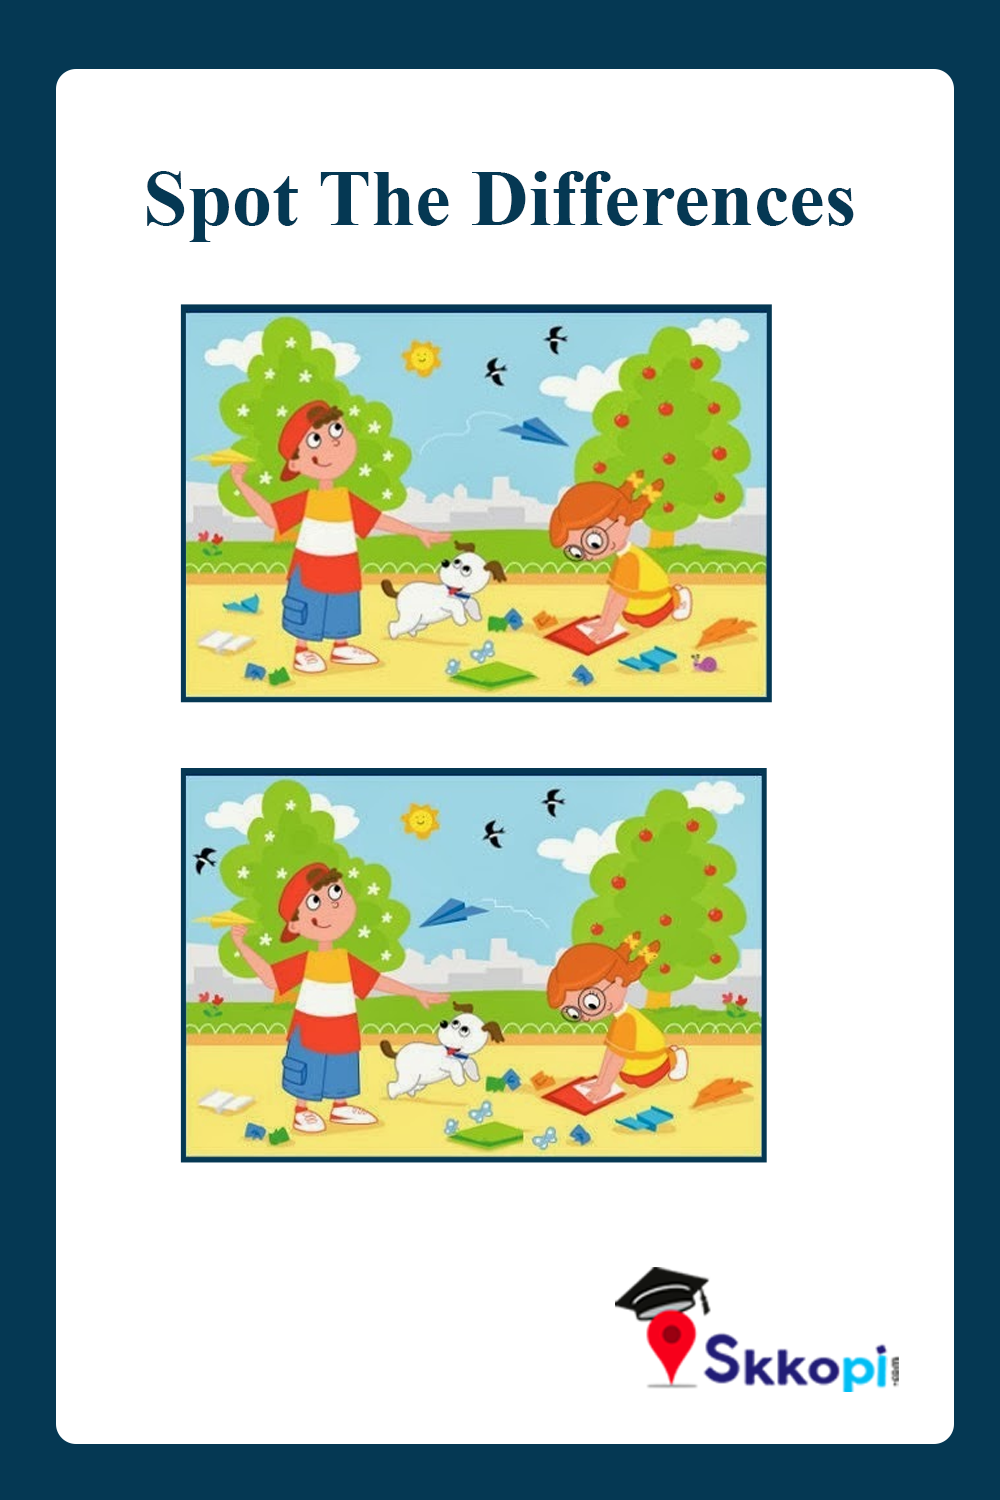 Spot The Differences Brain Teaser Brain Teasers Brainstorming Math